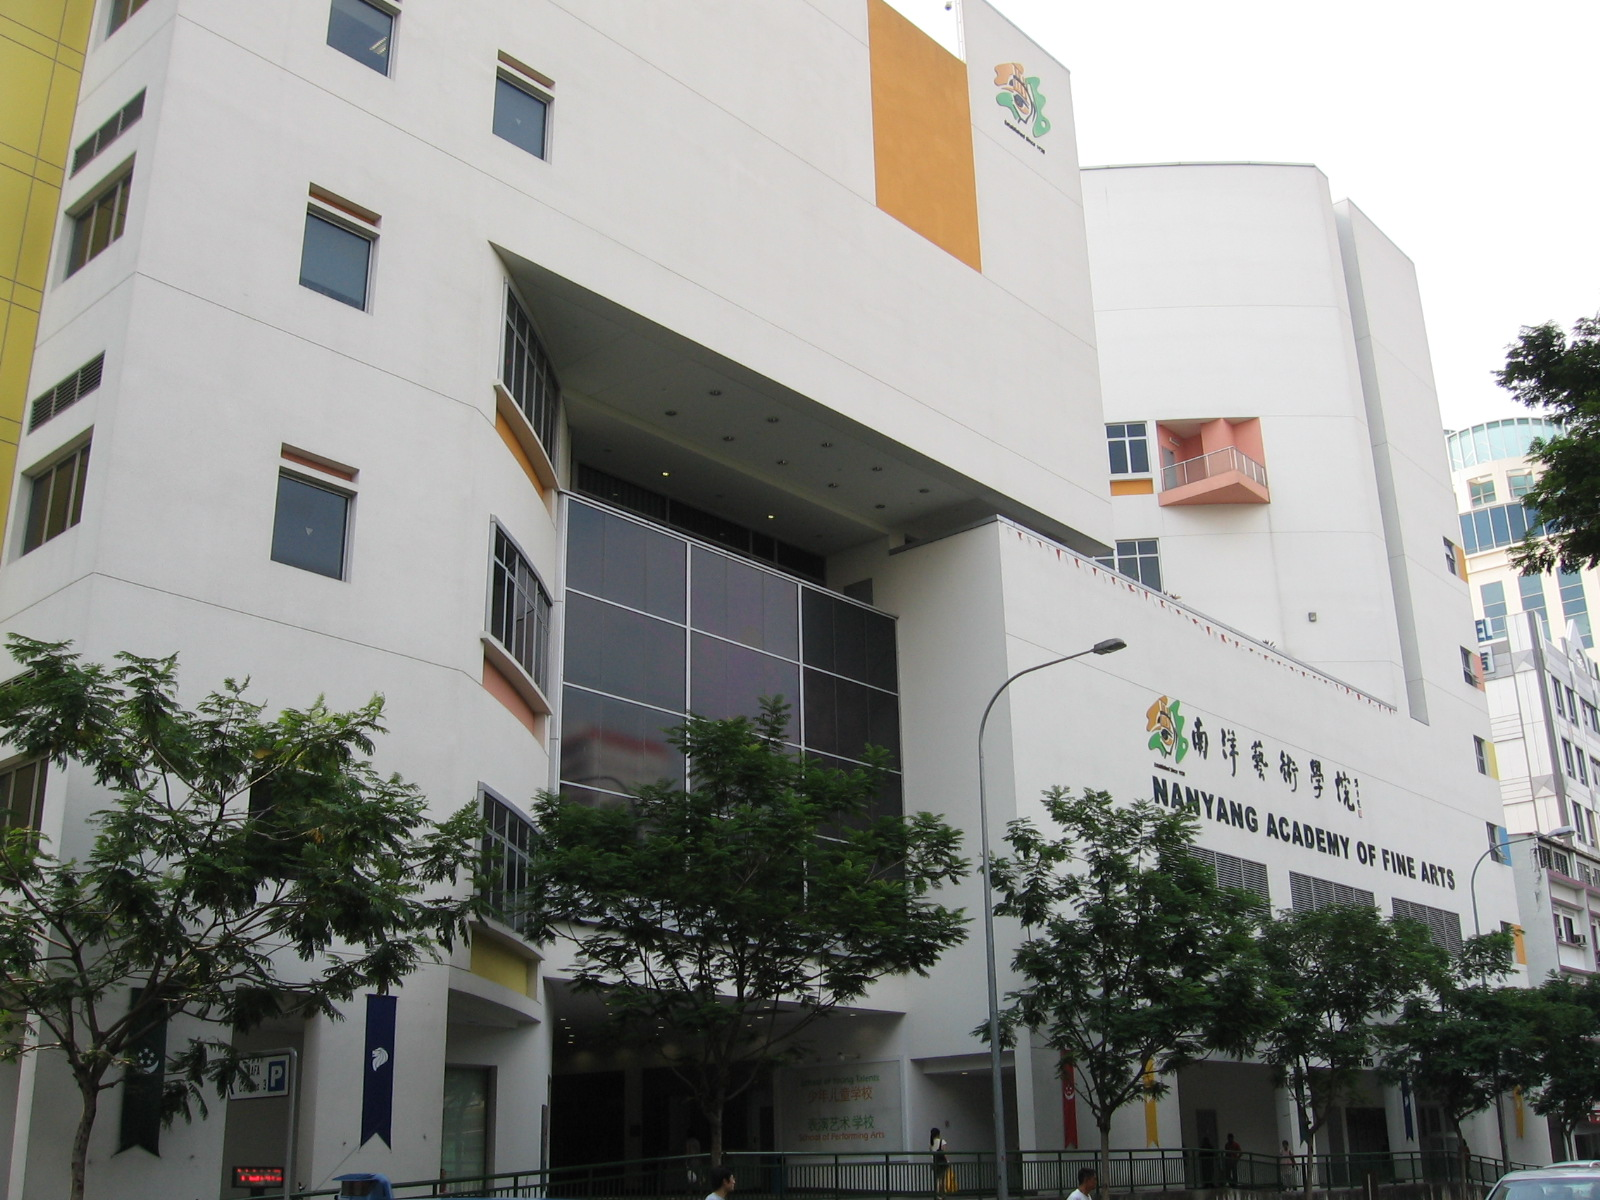 Academy Of The Arts >> File:Nanyang Academy of Fine Arts 2, Aug 06.JPG - Wikimedia Commons